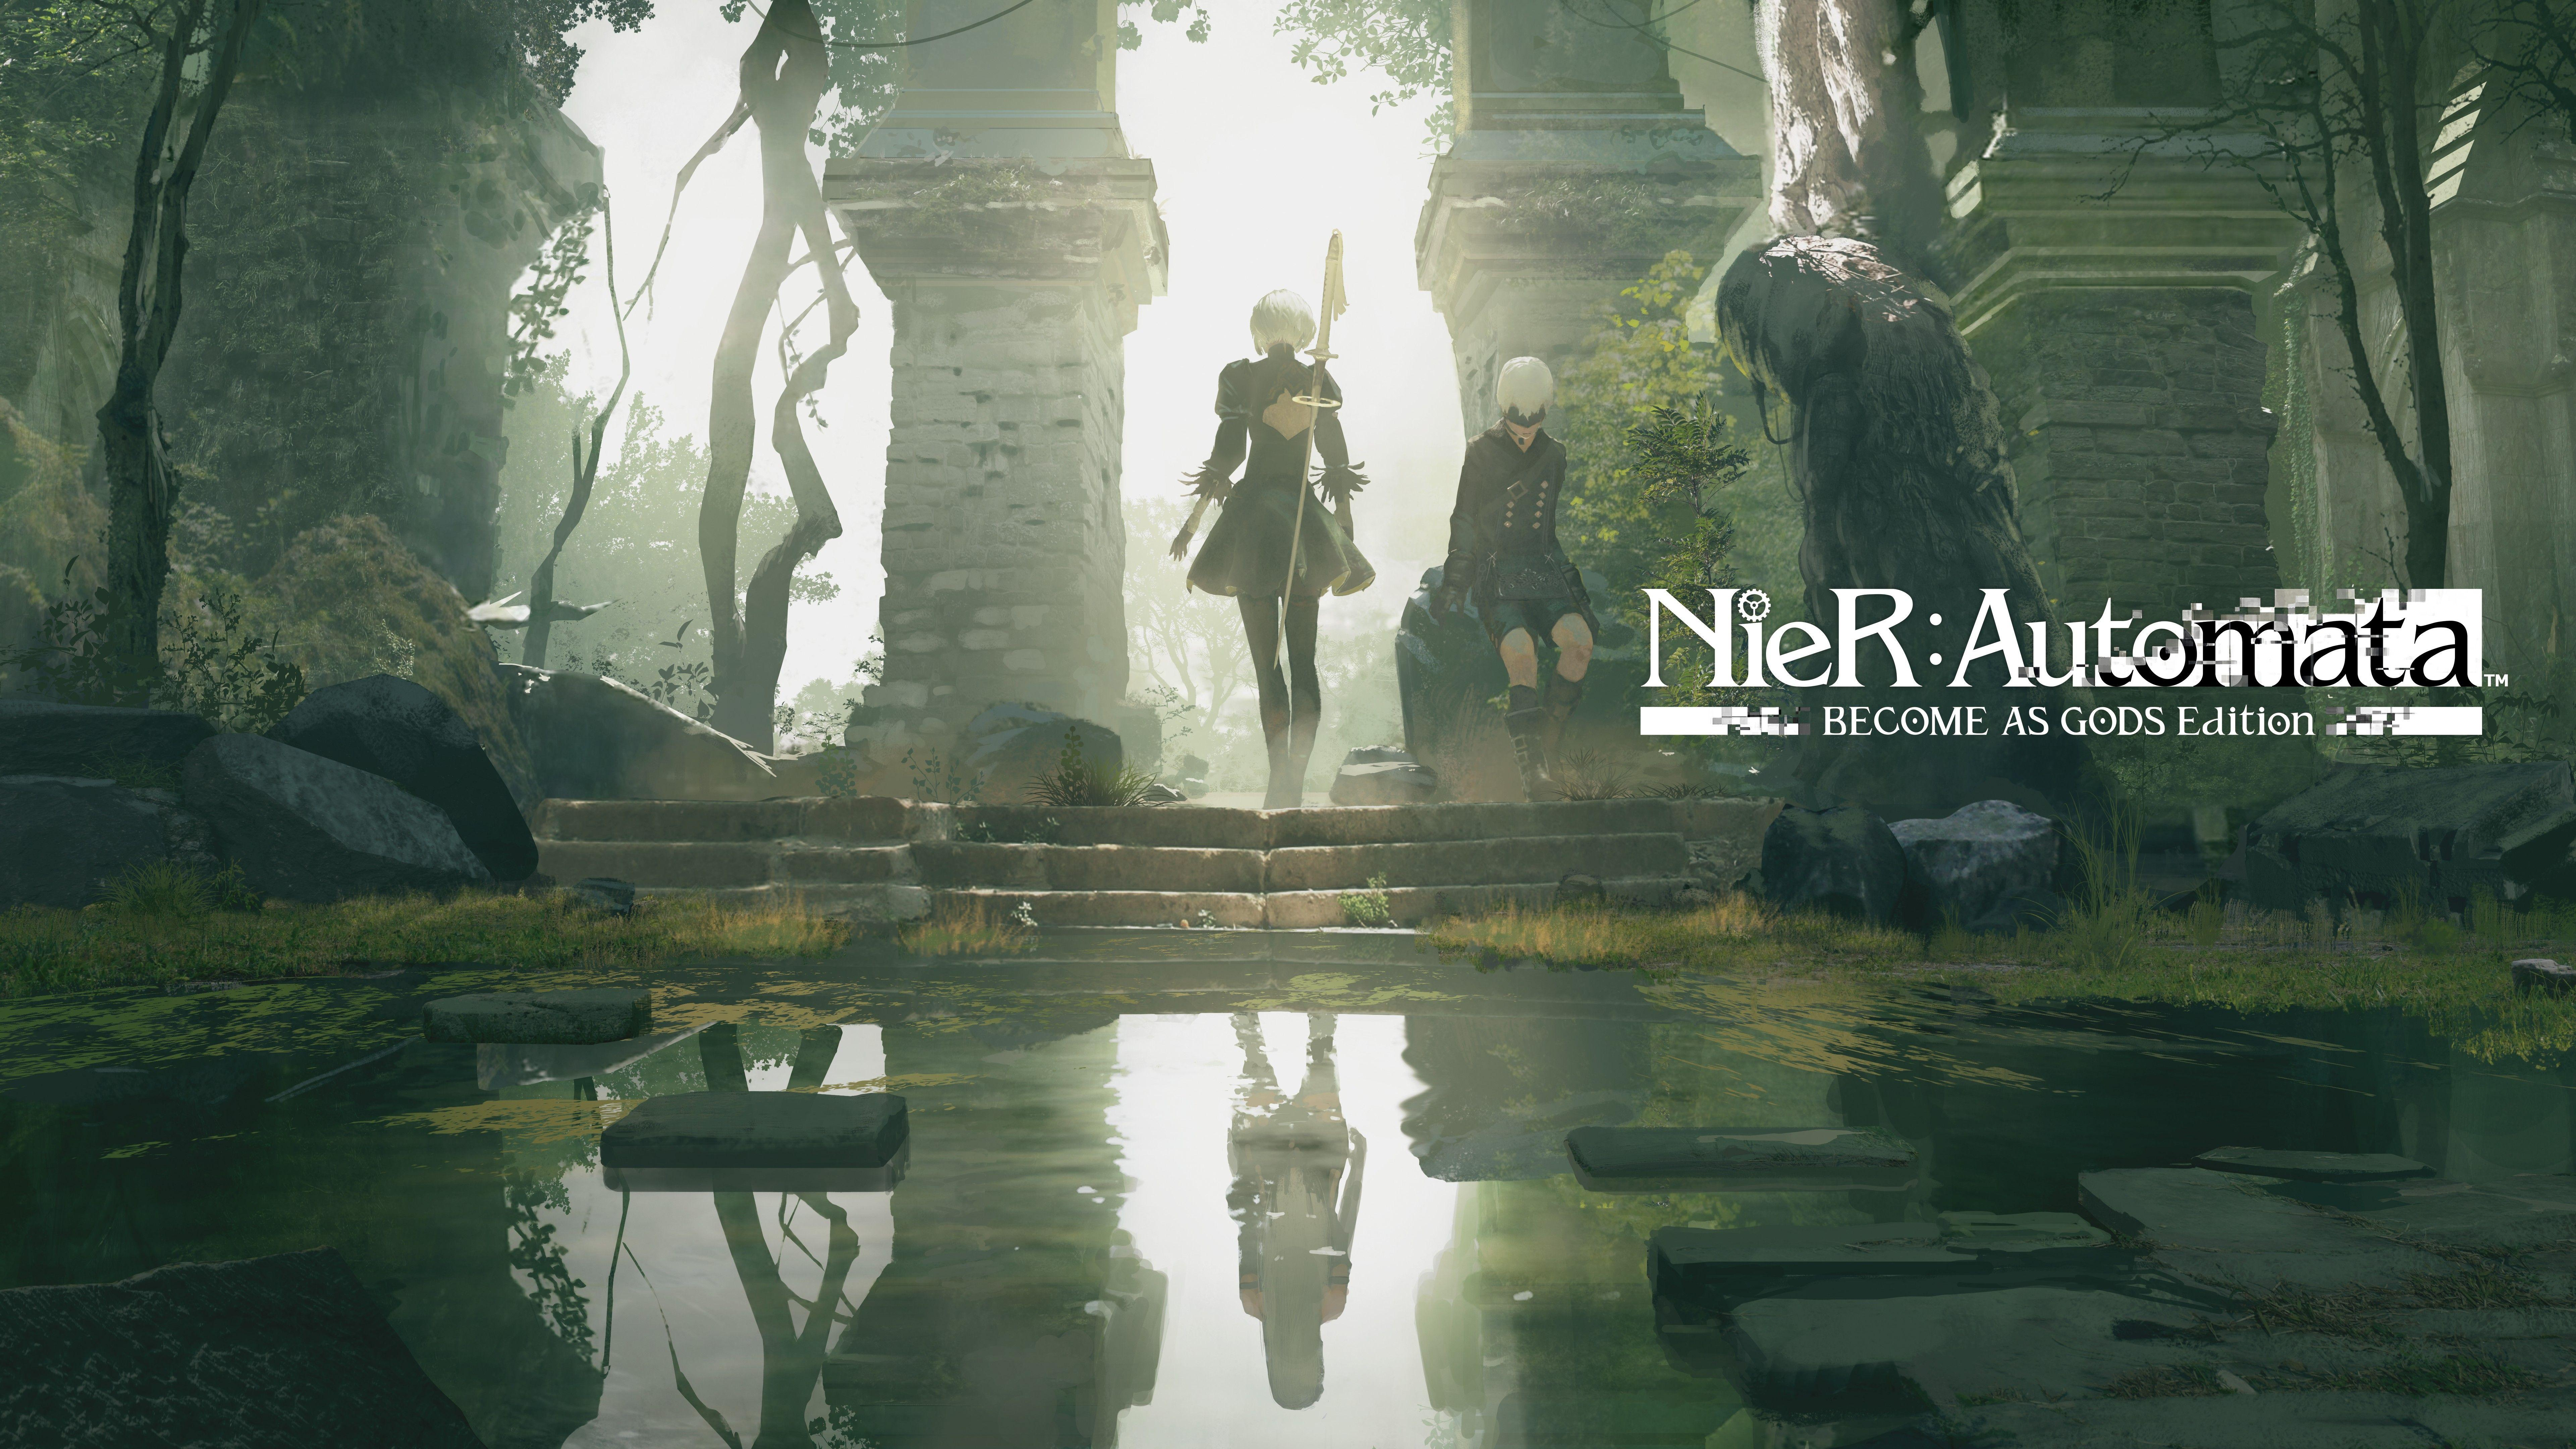 Wallpapers Nier: Automata, Become as Gods Edition, Xbox One, 2018